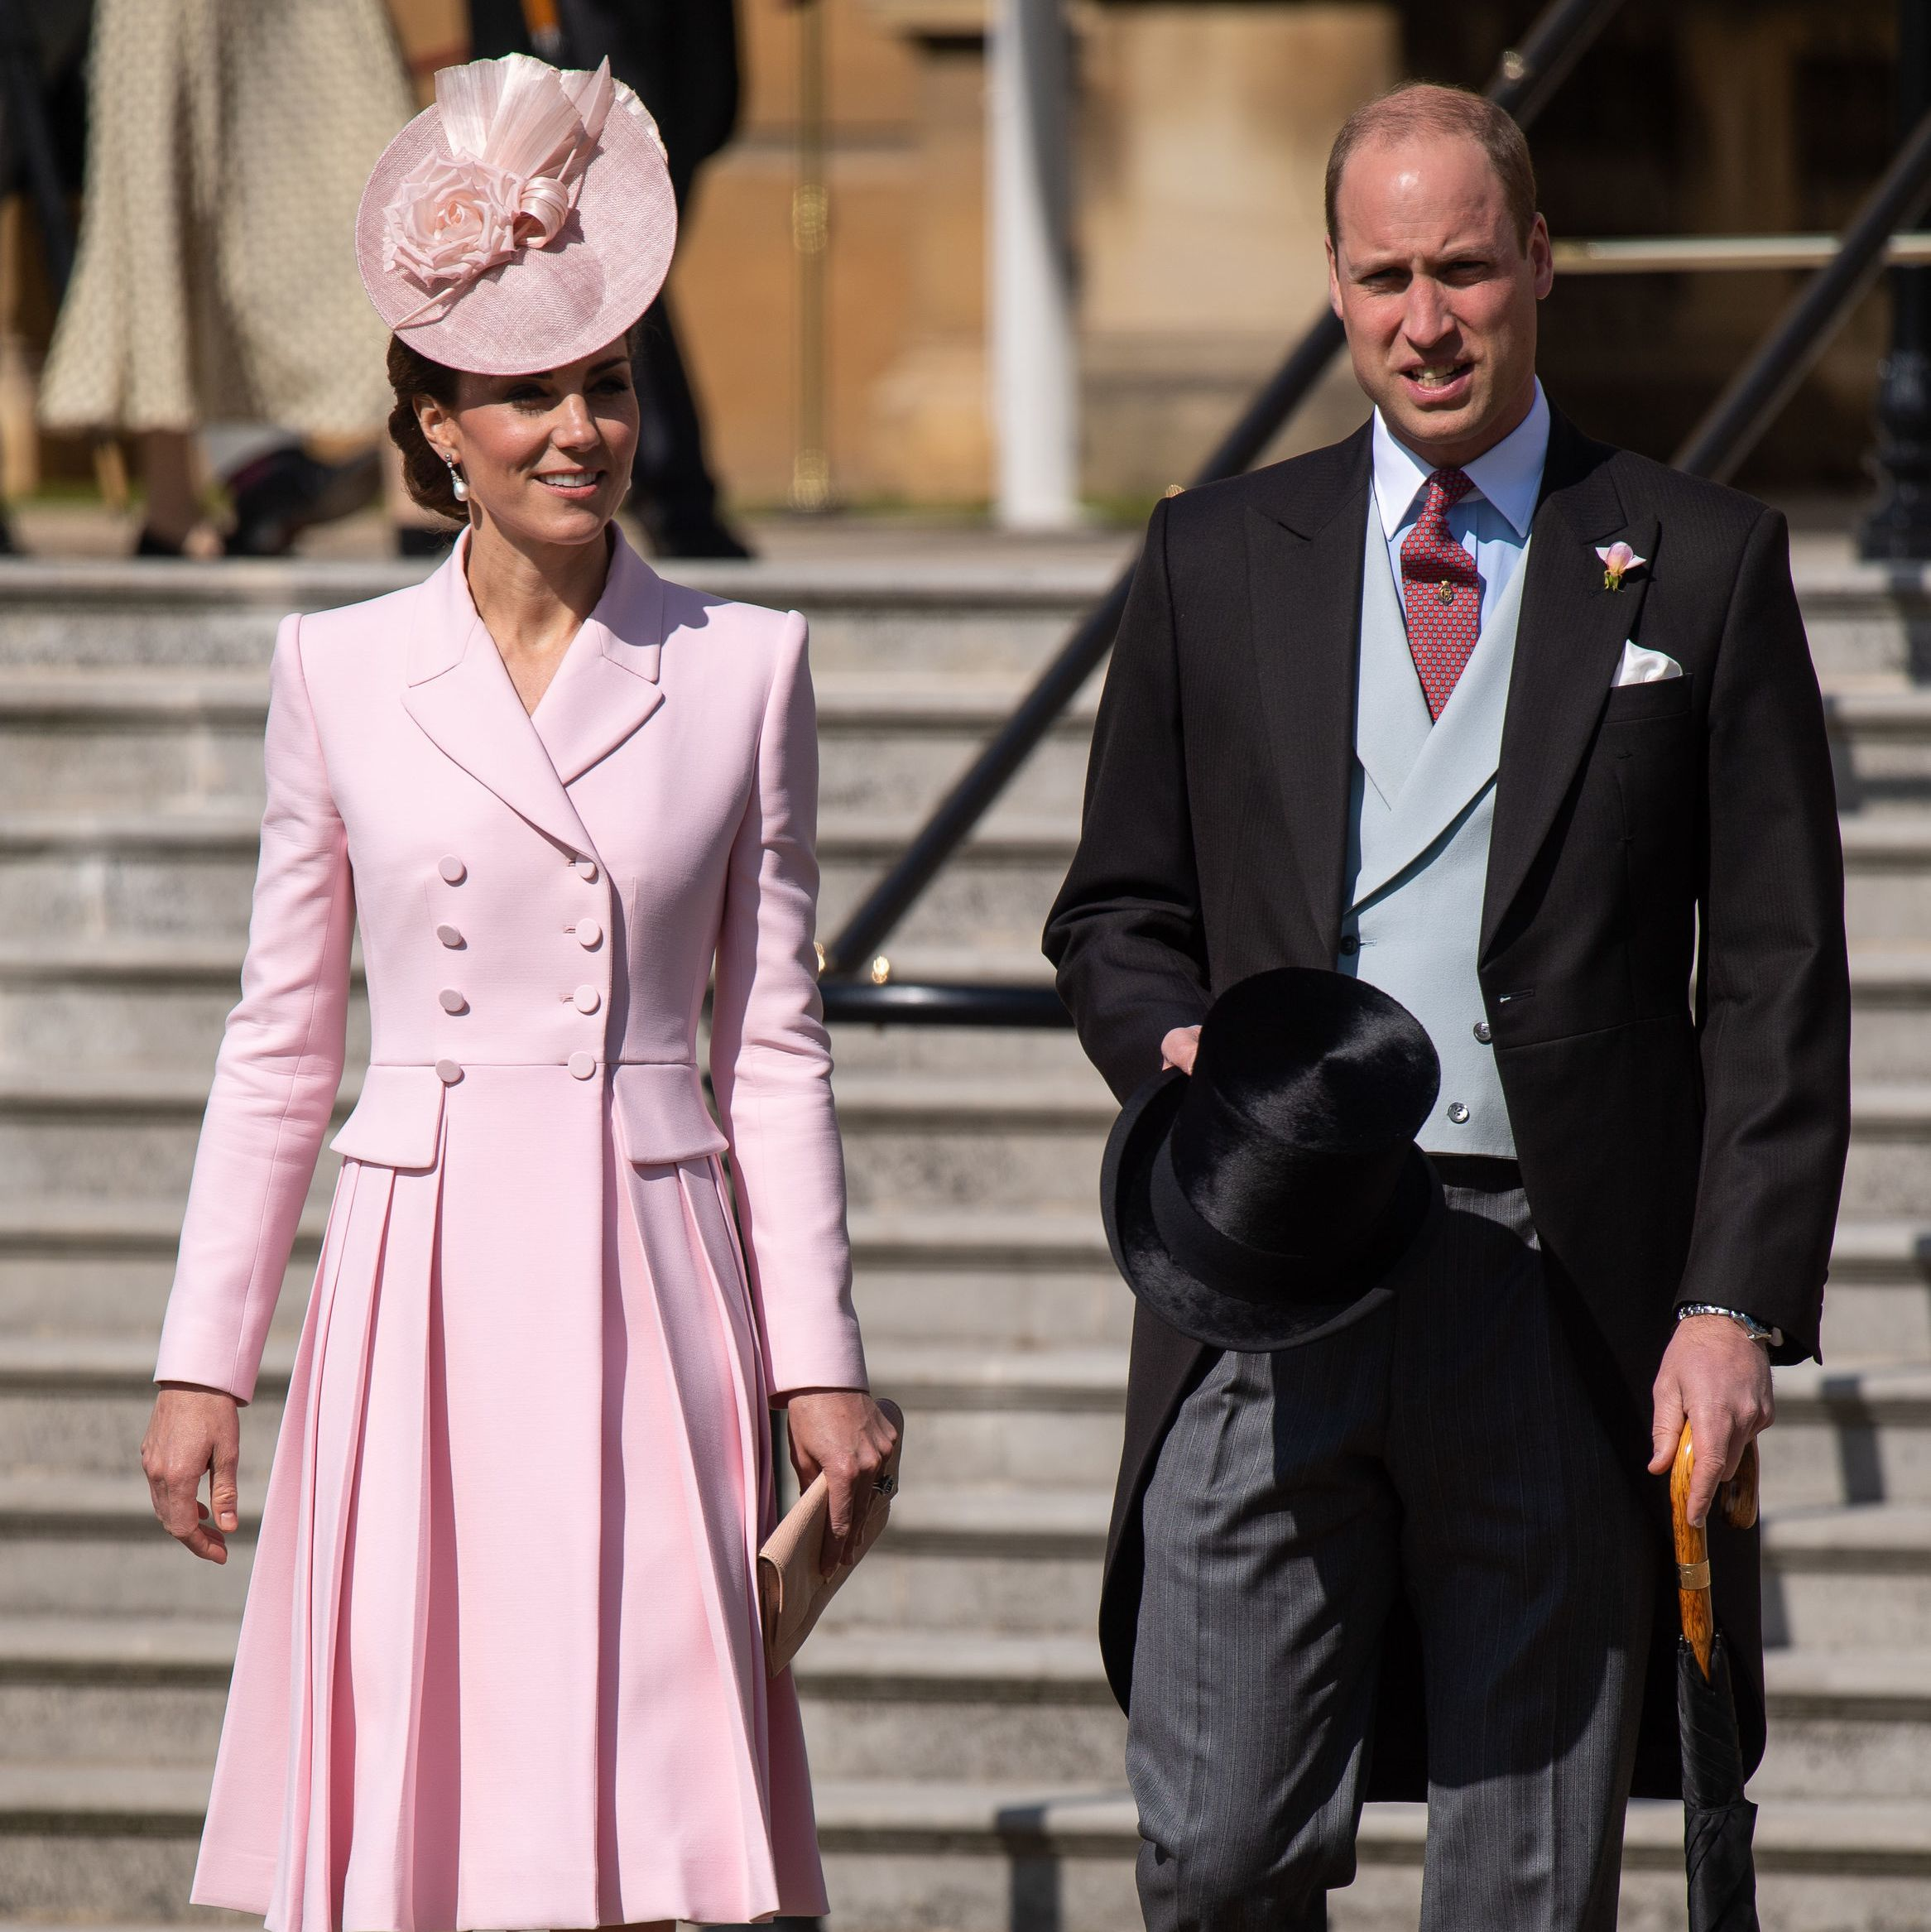 The Duchess of Cambridge looks pretty in pink at the Queen's garden party